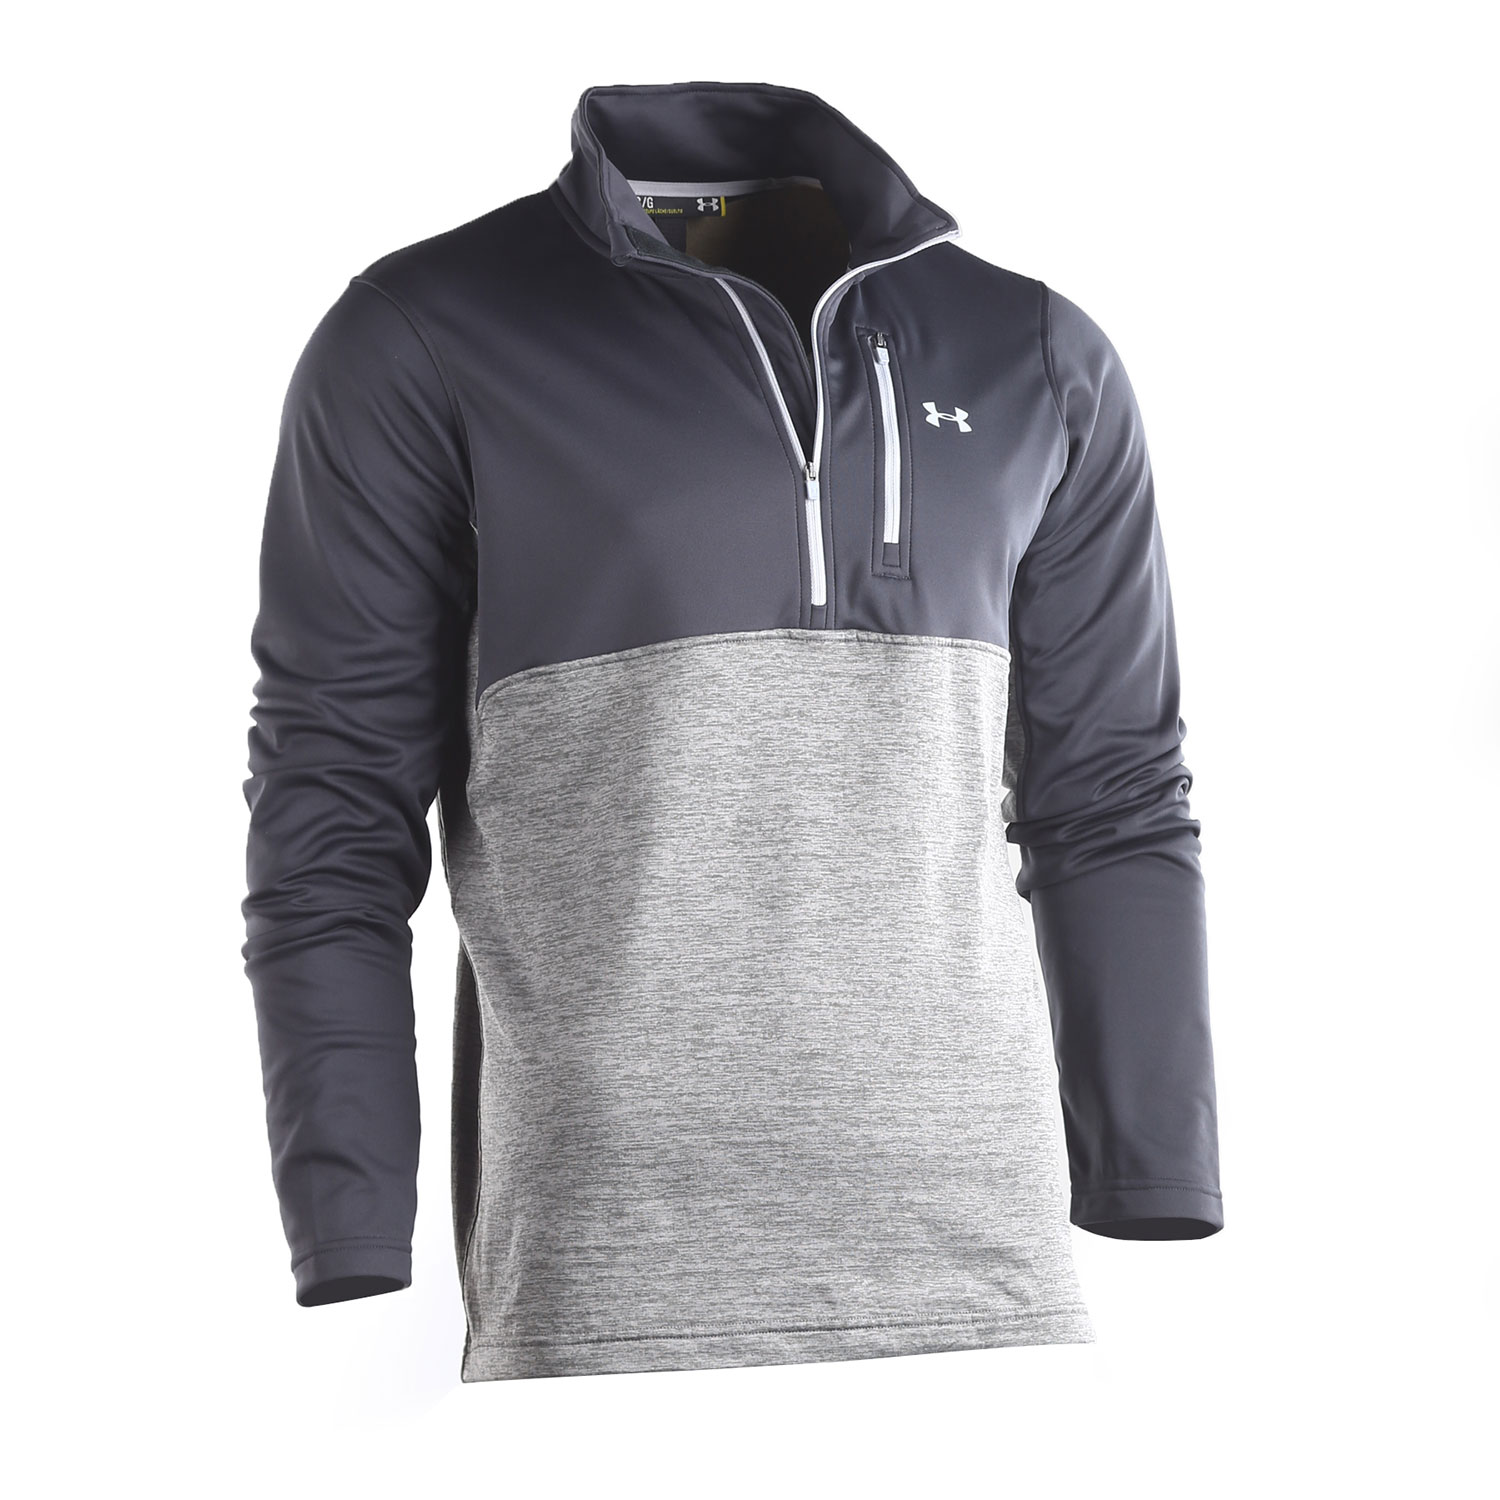 28a53a261 under armour half zip mens cheap > OFF40% The Largest Catalog Discounts